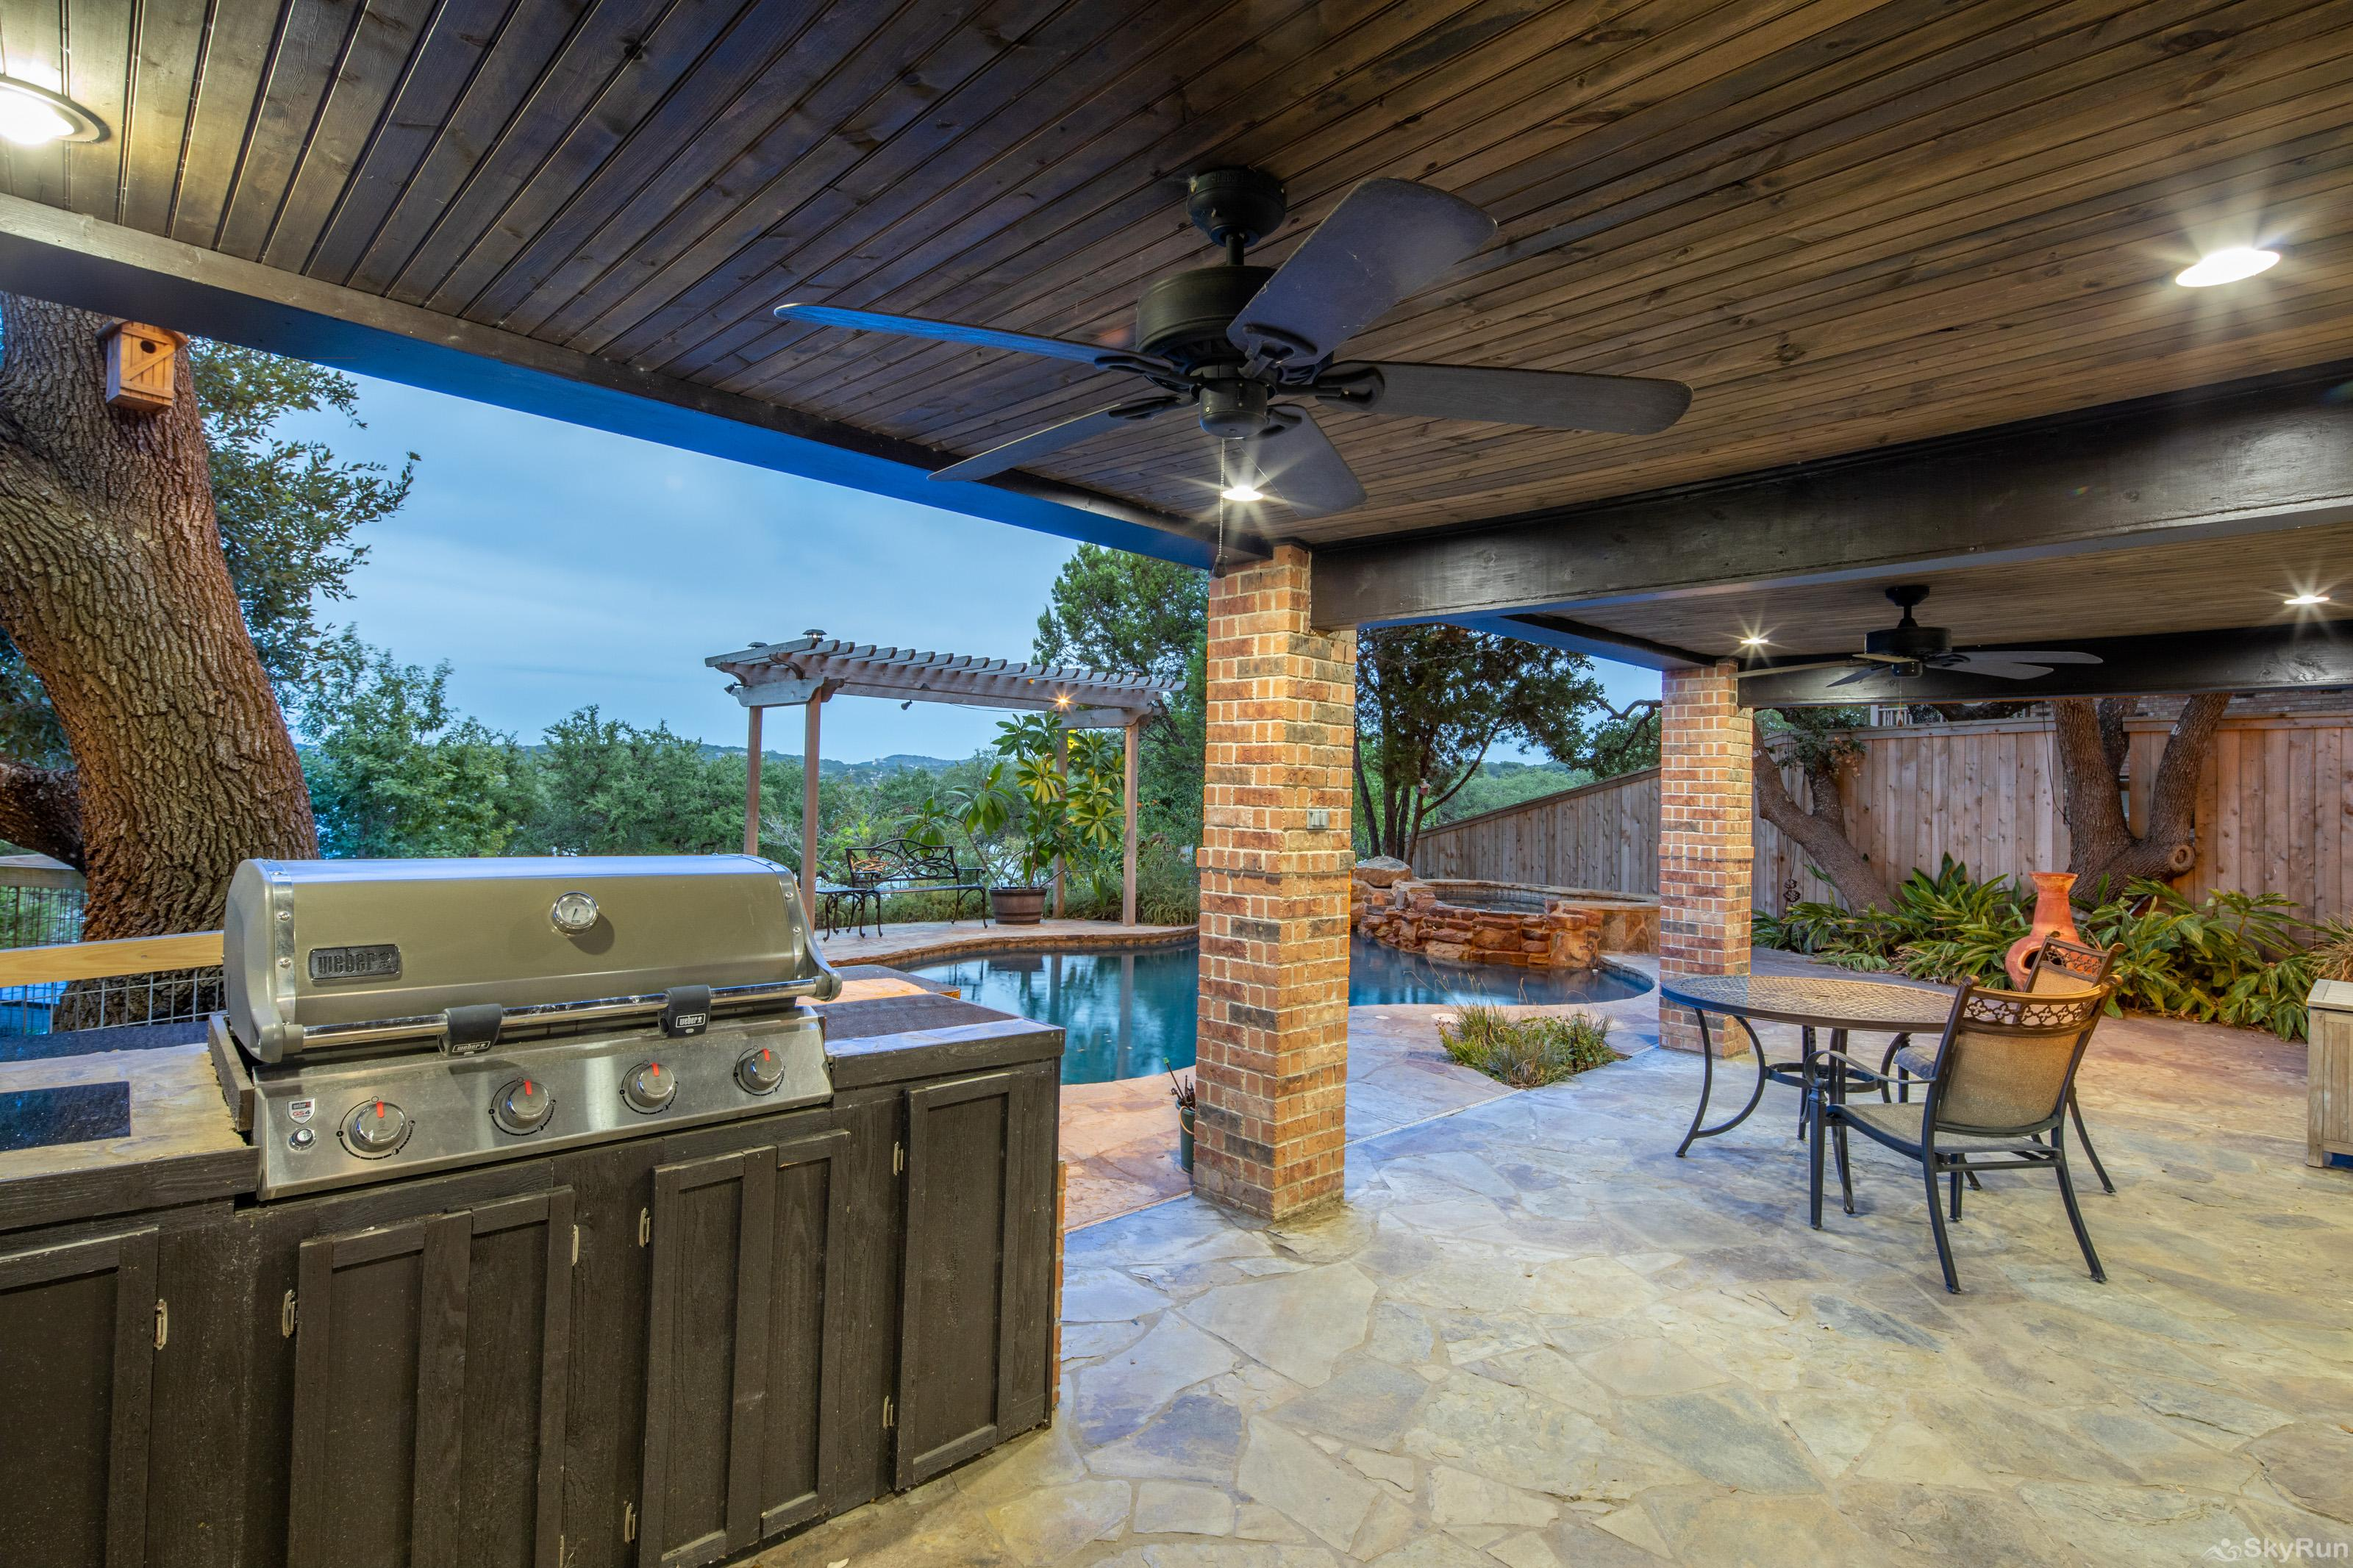 HUMMINGBIRD HIDEAWAY Covered poolside patio with grill and outdoor kitchen